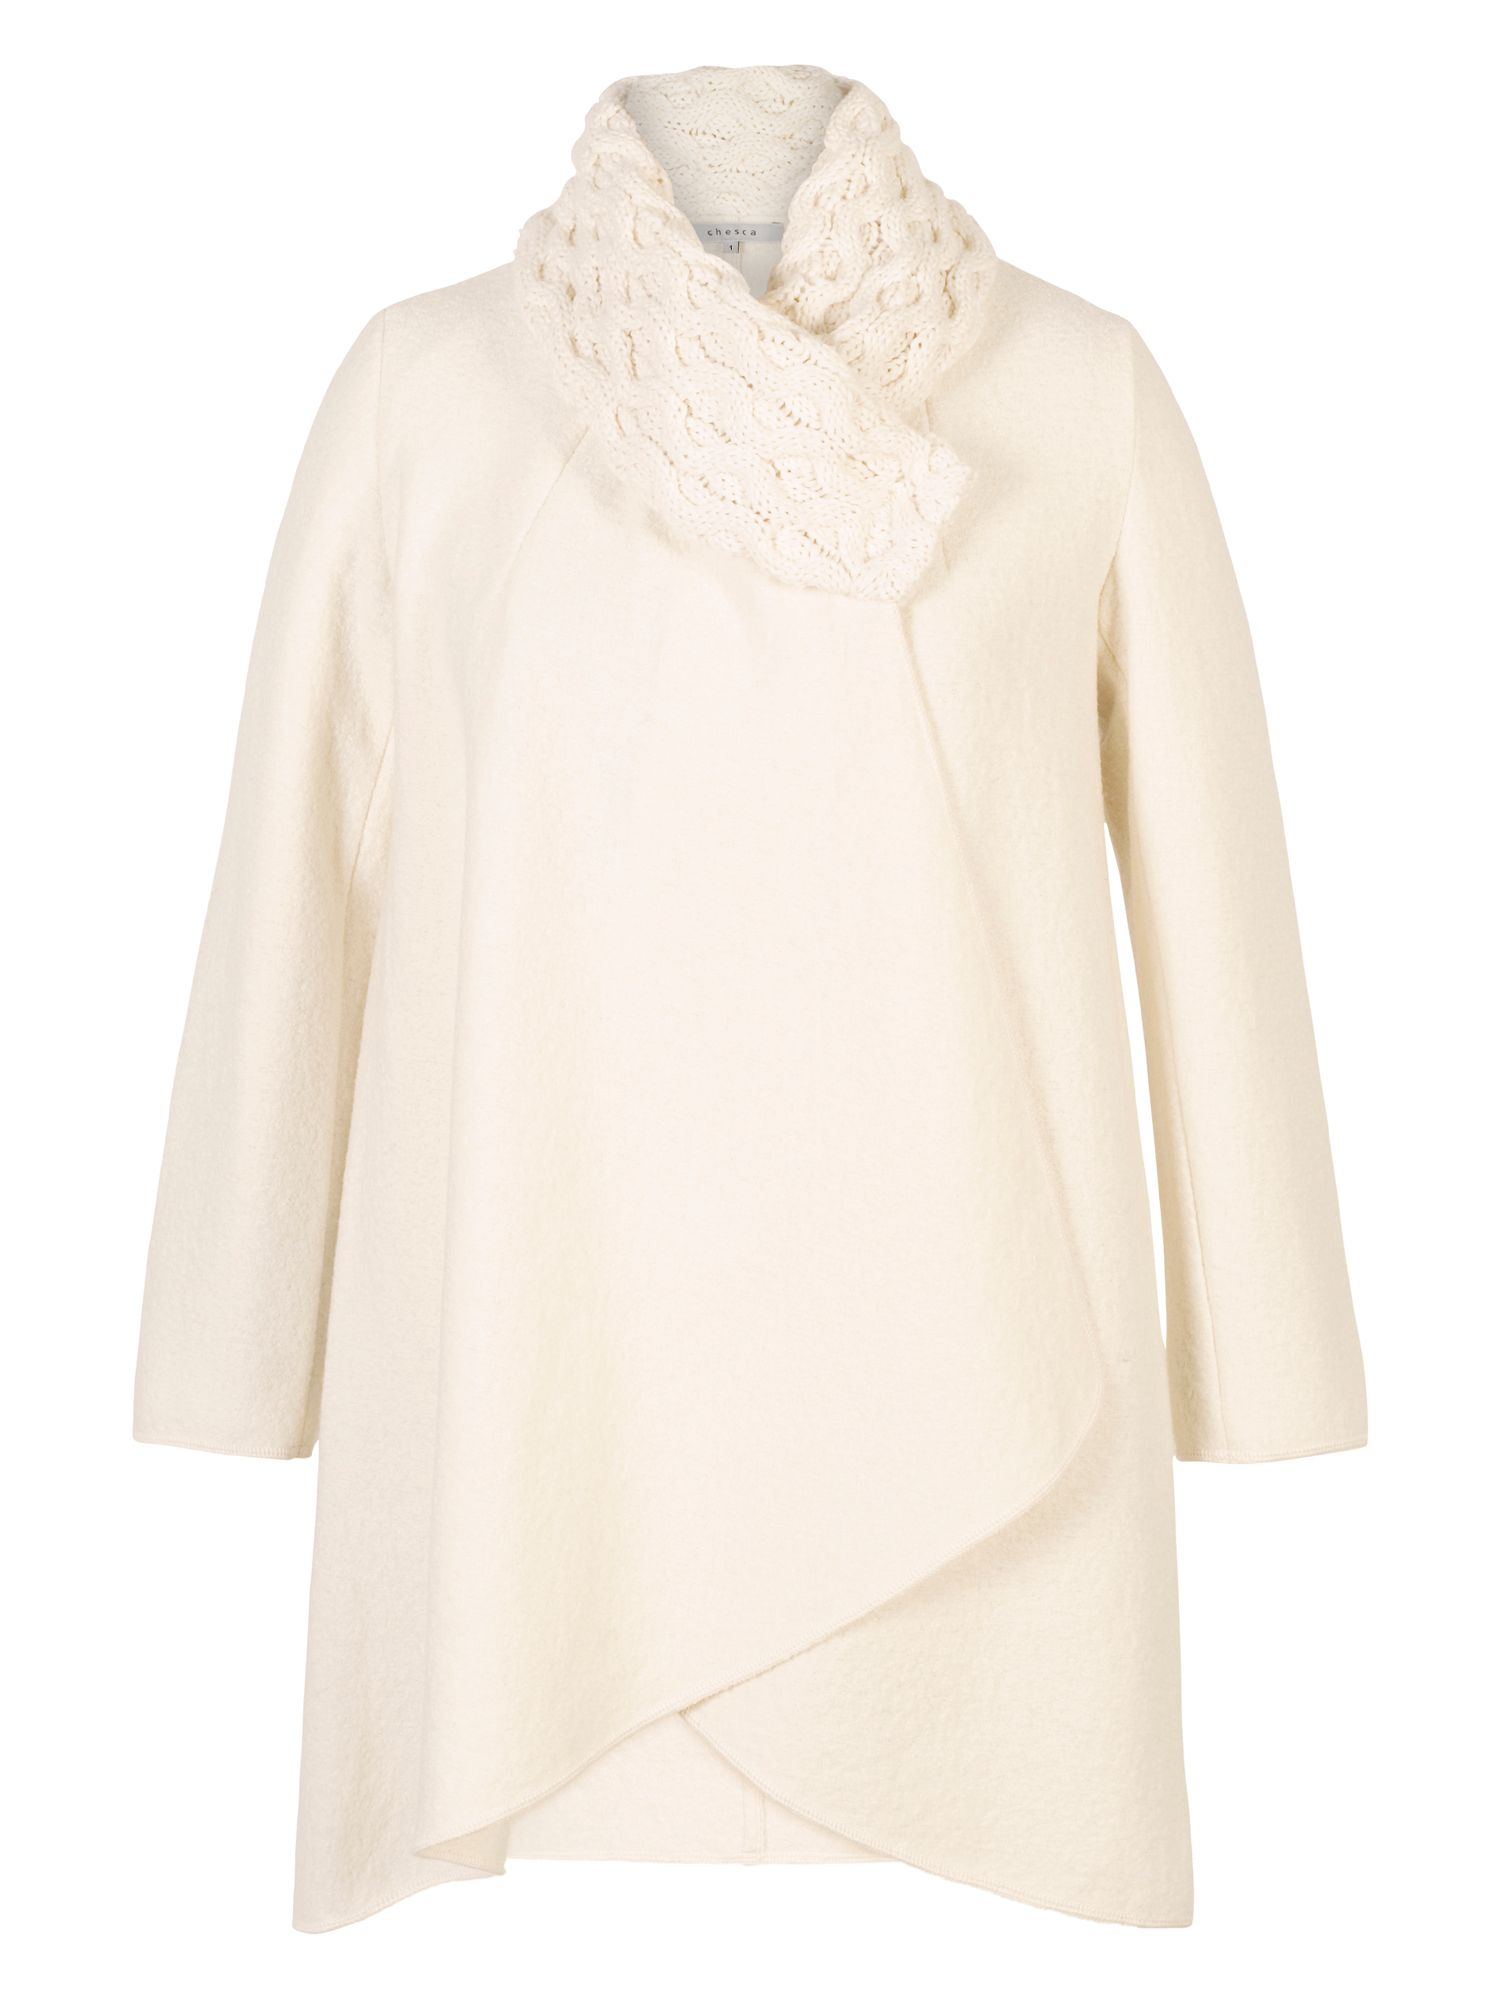 Chesca Aran Collar Coat, White